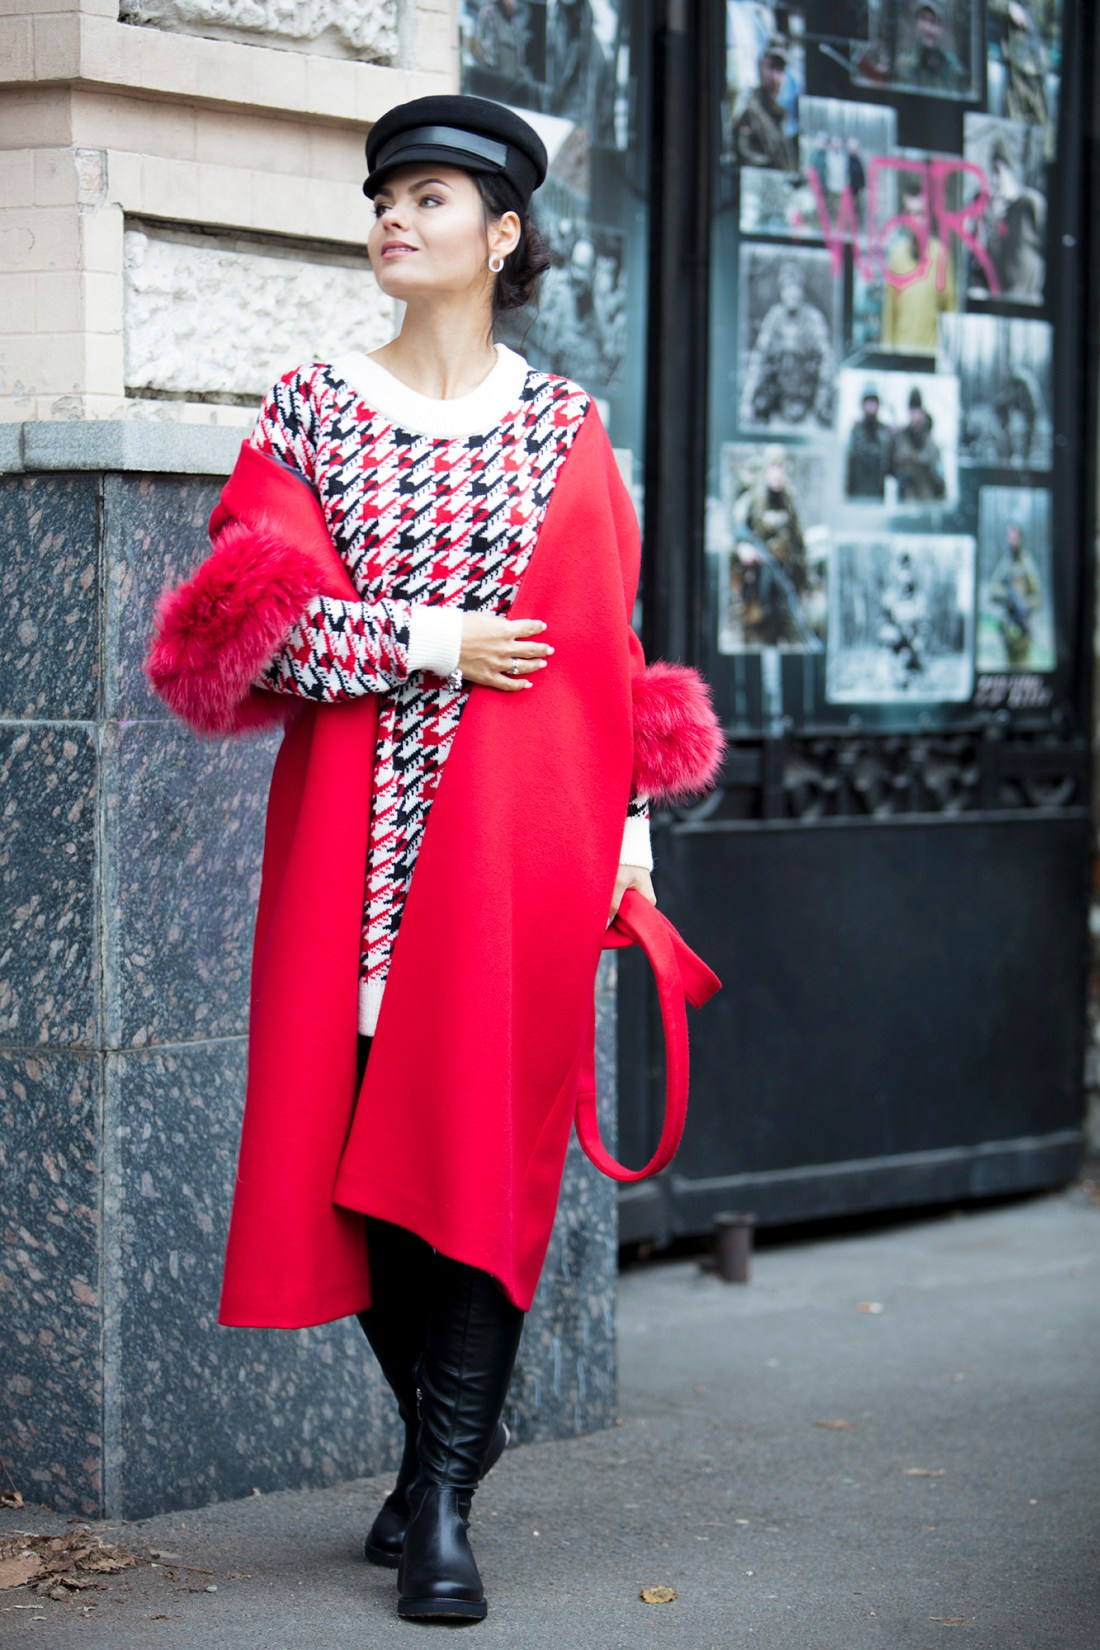 Street style fashion lookbook image model with red coat